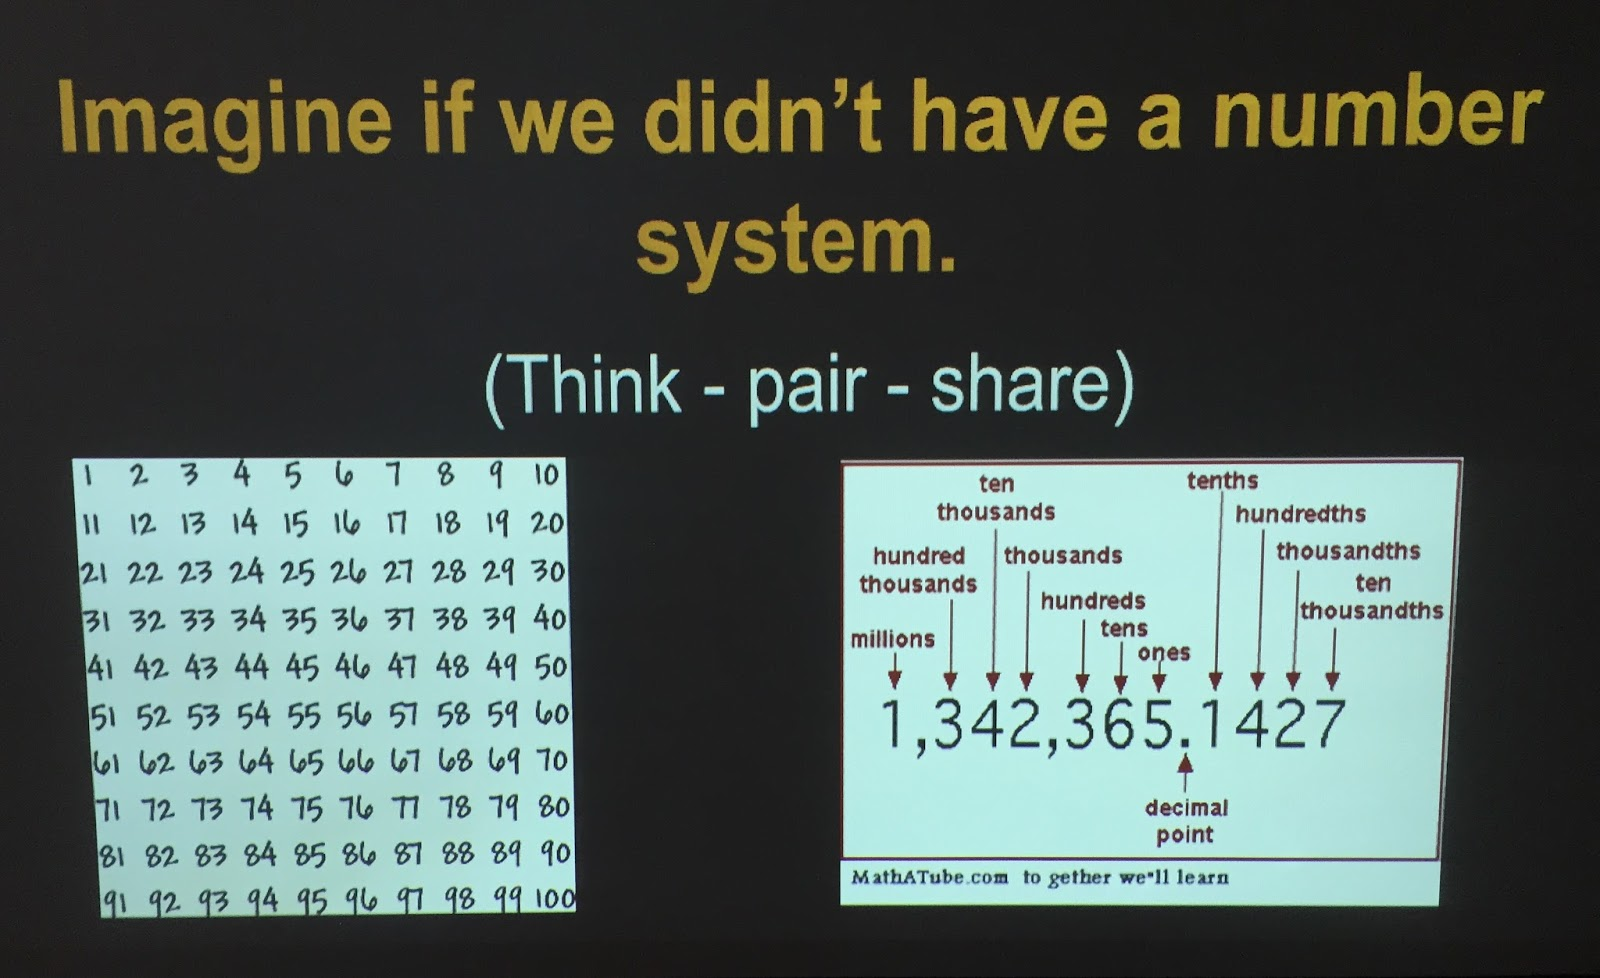 Enquiry-Based Maths: Some \'Whys\' Behind our Base 10 Number System